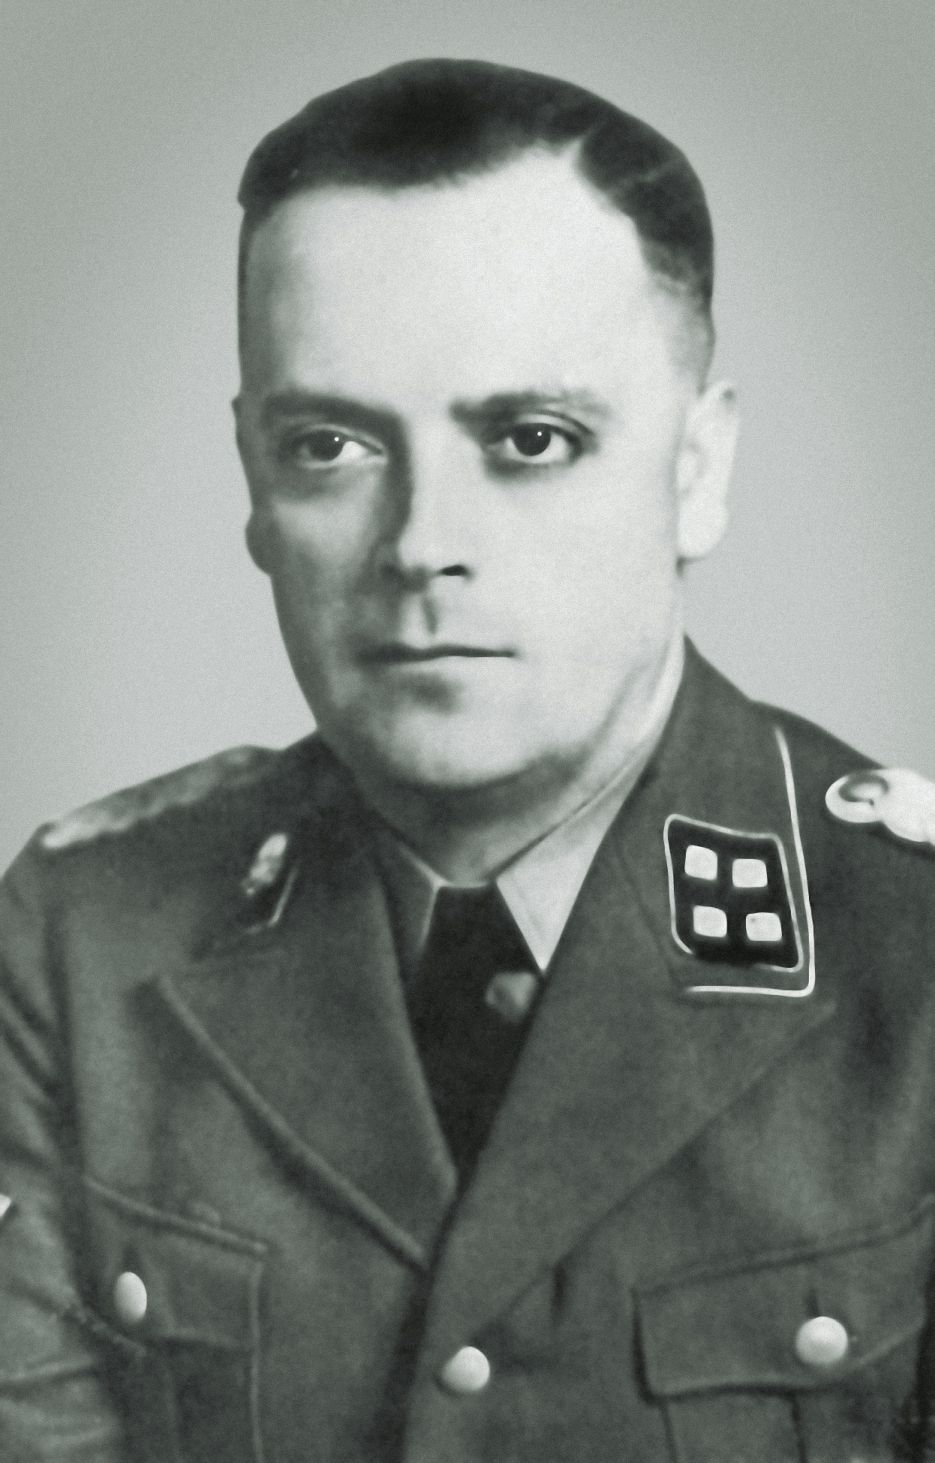 Arthur Liebehenschel (25 November 1901 – 24 January 1948) was a commandant at the Auschwitz and Majdanek death camps during World War II. He was convicted of war crimes by the Polish government following the war and executed in 1948.